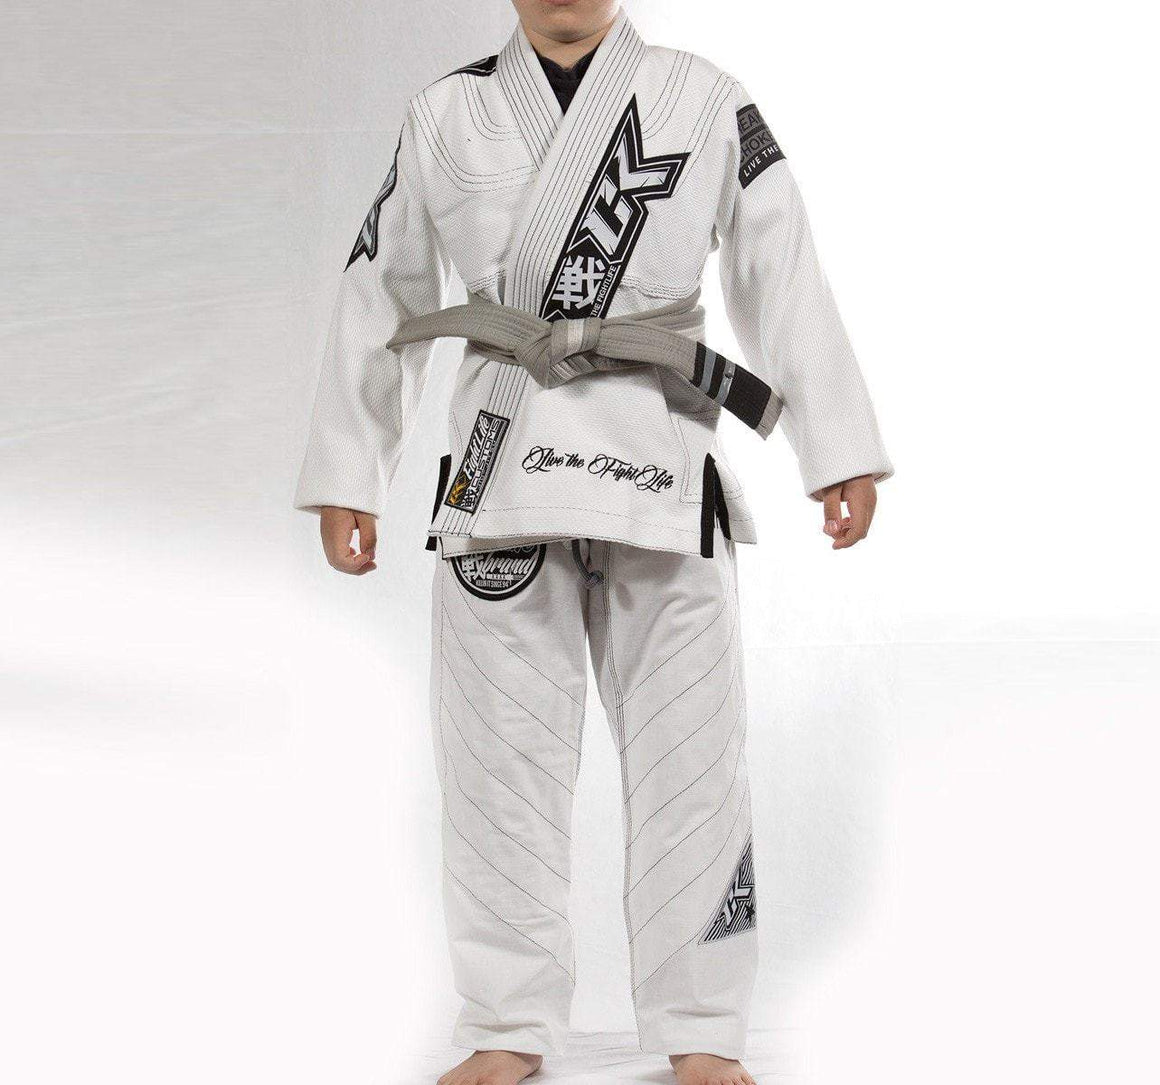 Contract Killer Discipline Kids Gi - White - Front